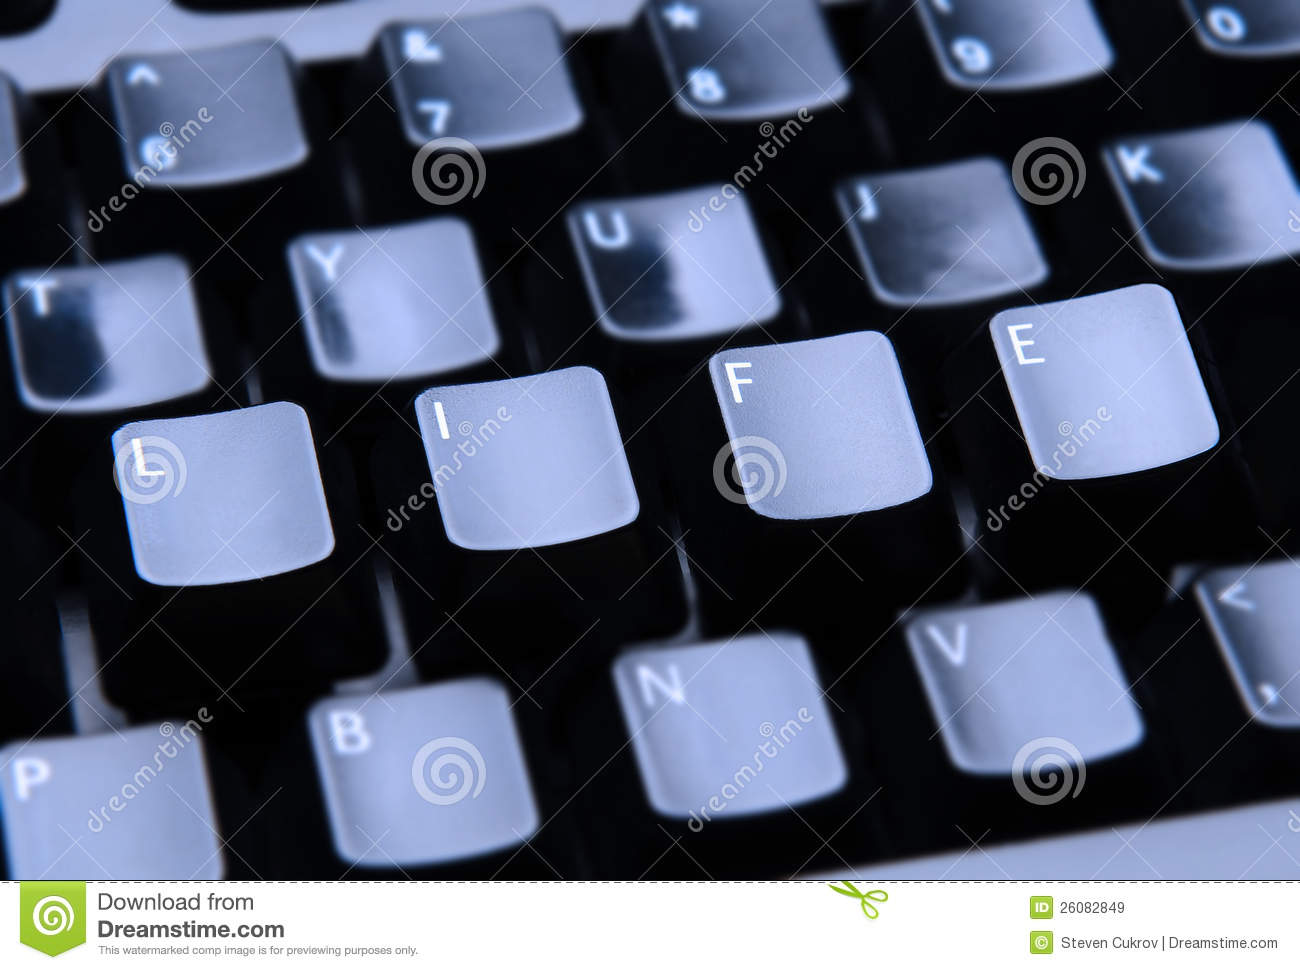 Life Spelled In Cobble : Life spelled out on keyboard royalty free stock photo